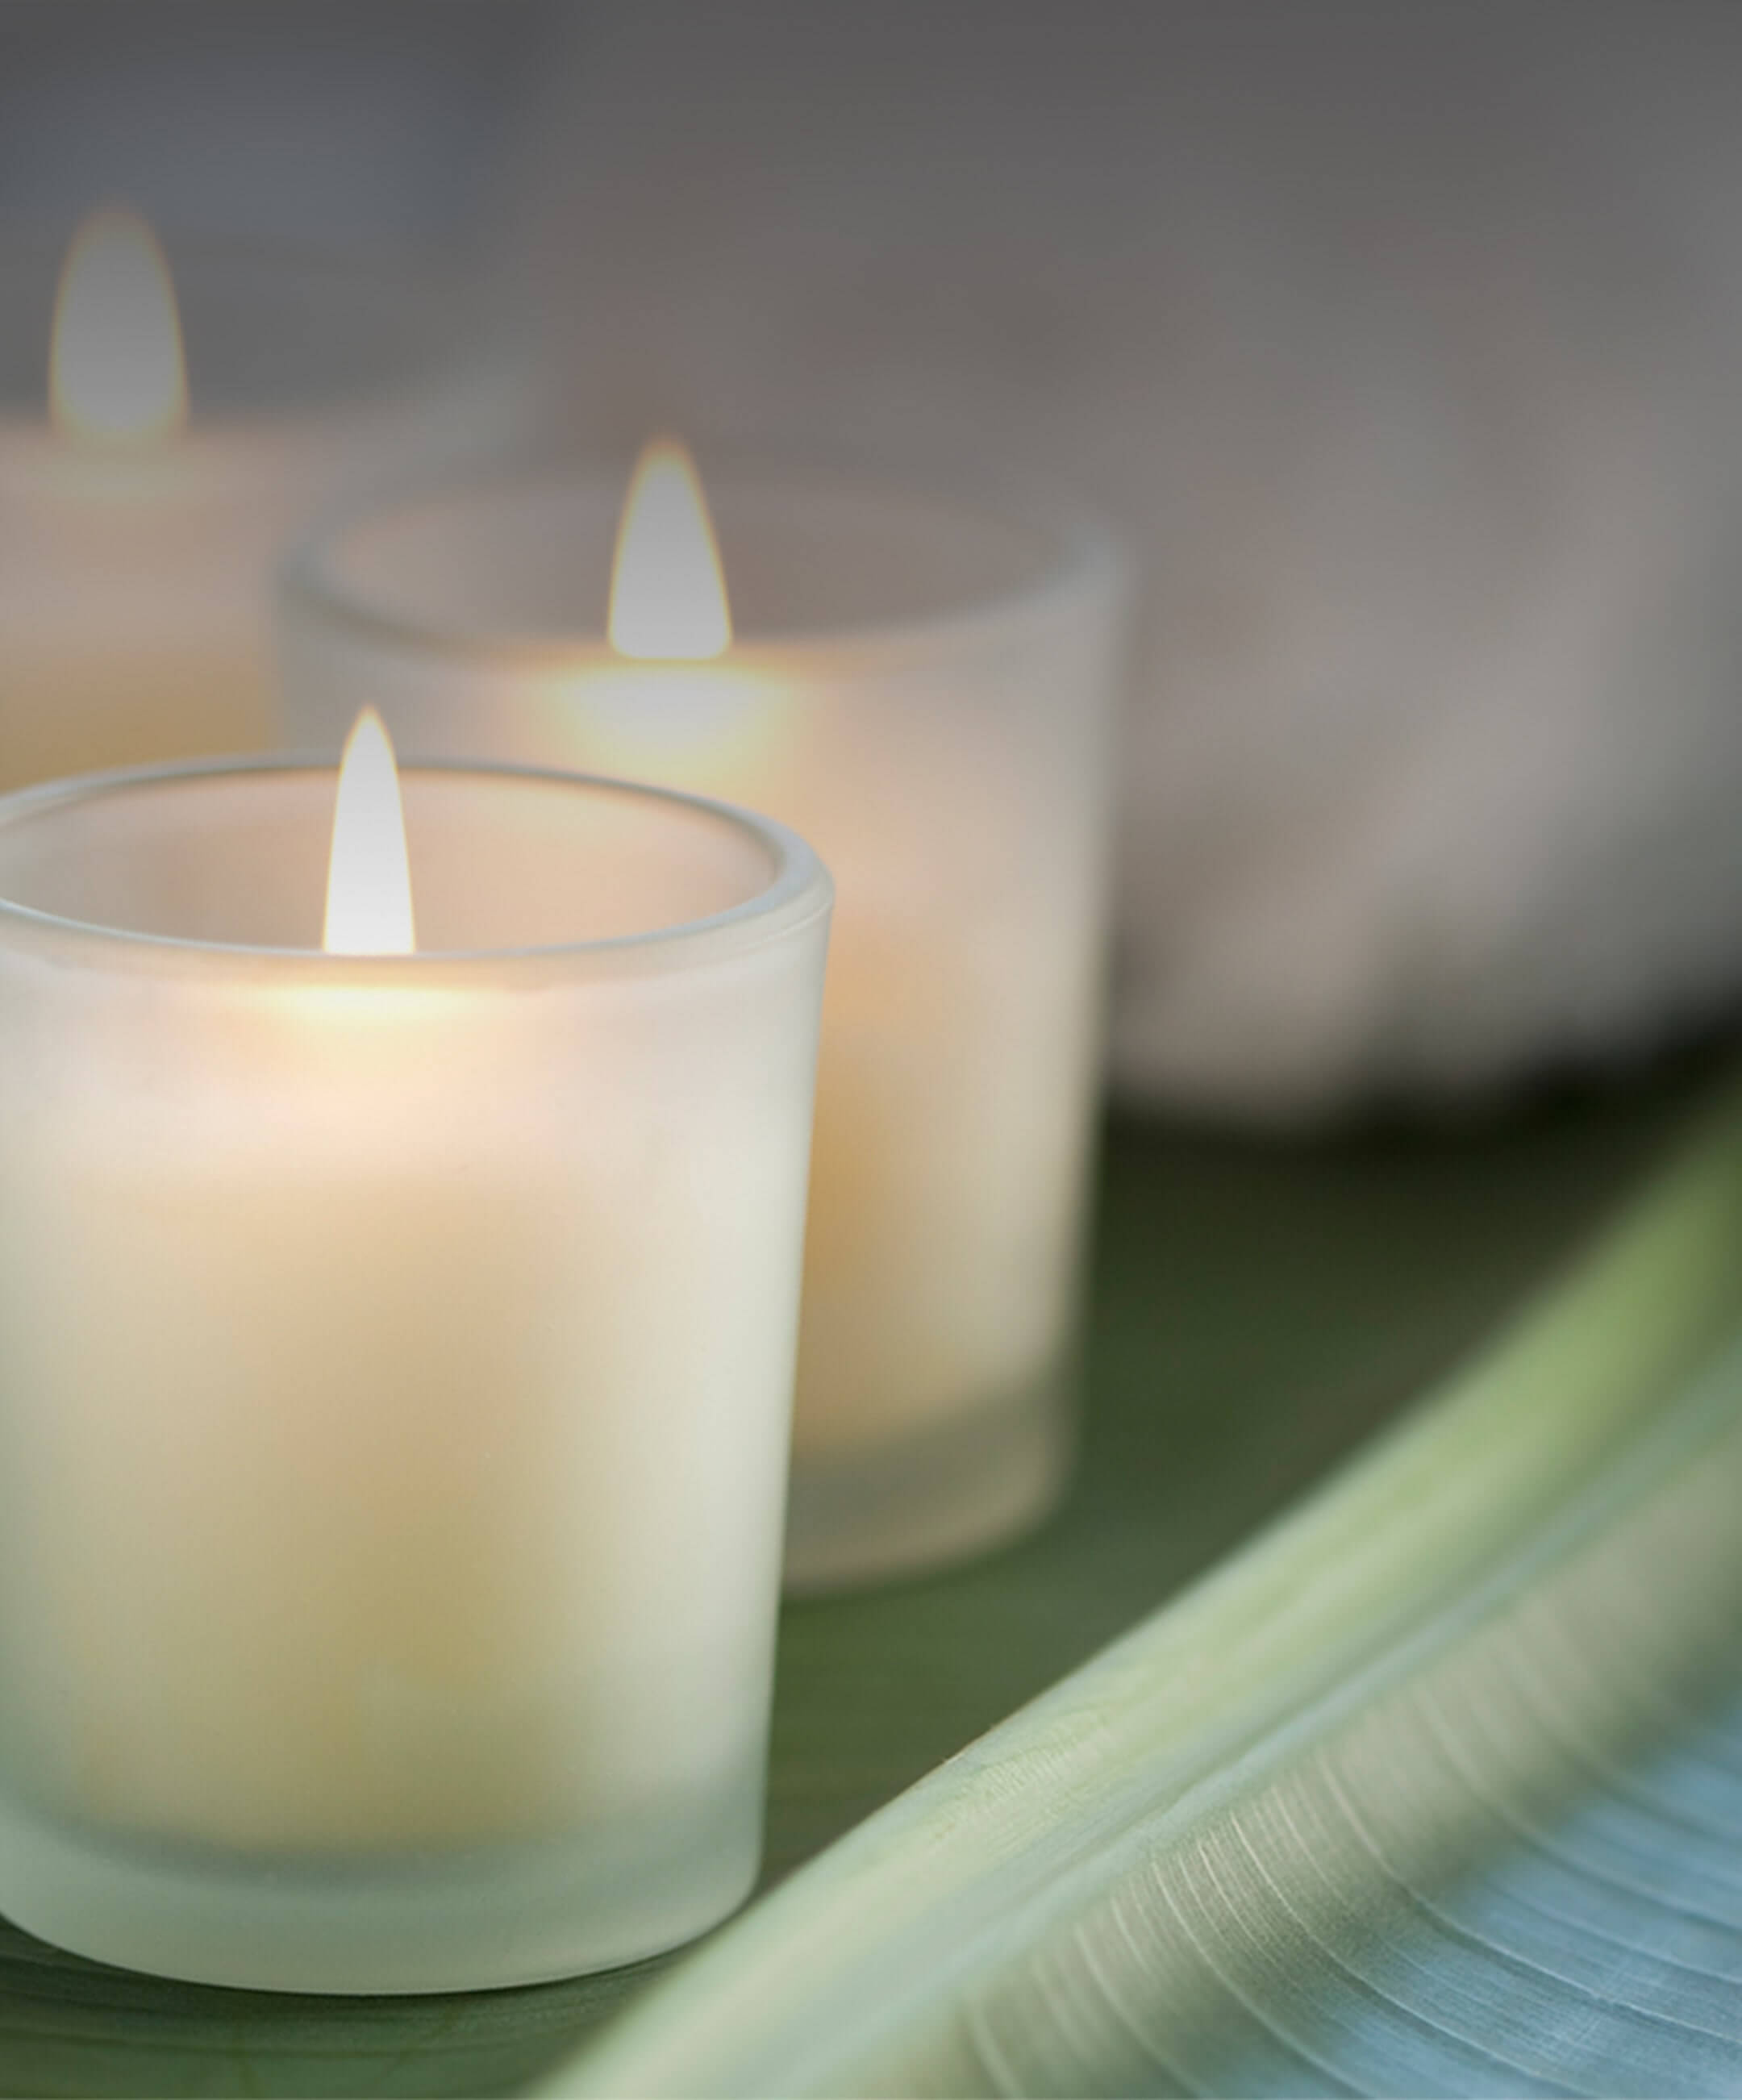 Scented candles can cover up odors, while an air purifier can help the source of the problem.